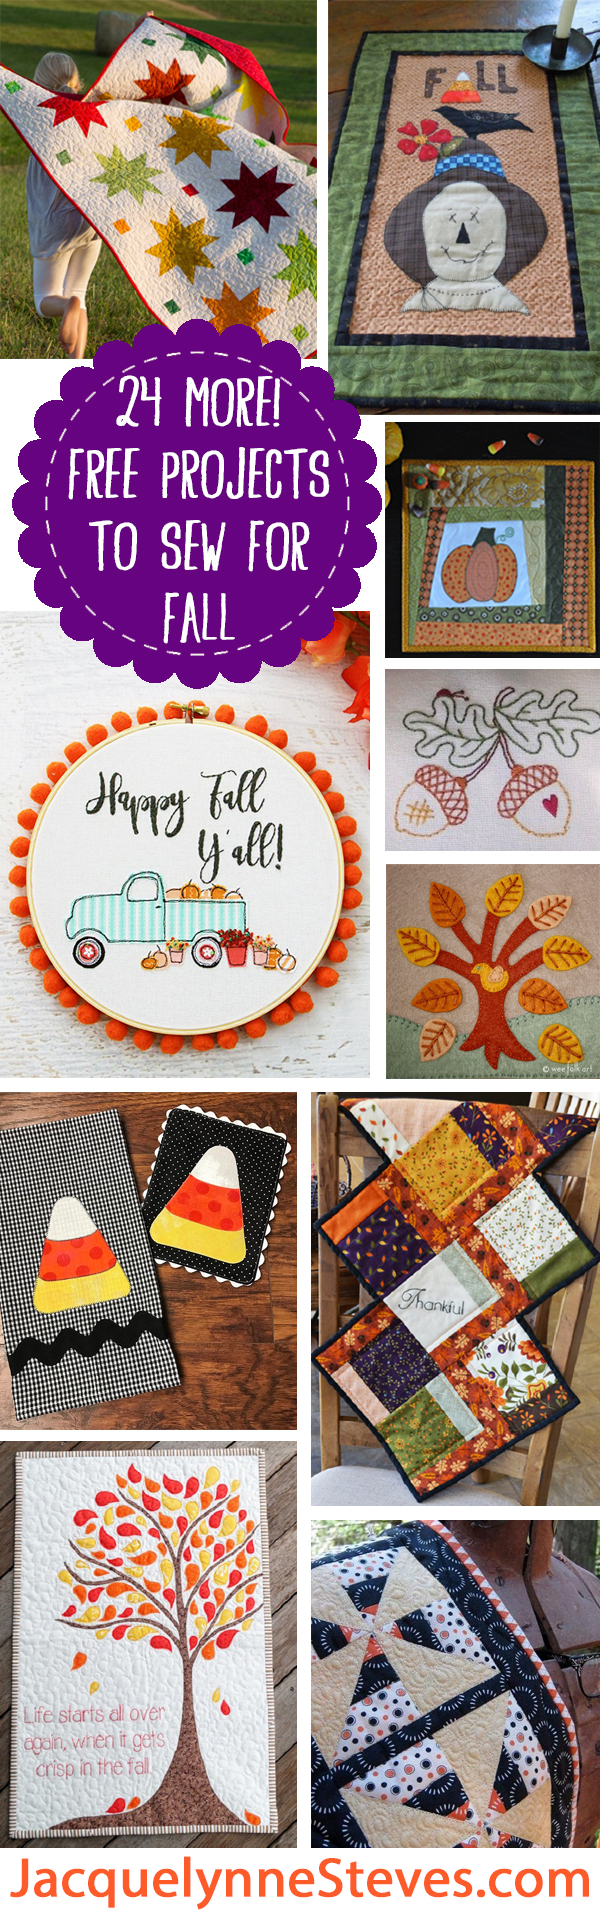 24 MORE Free Projects to sew for Fall!